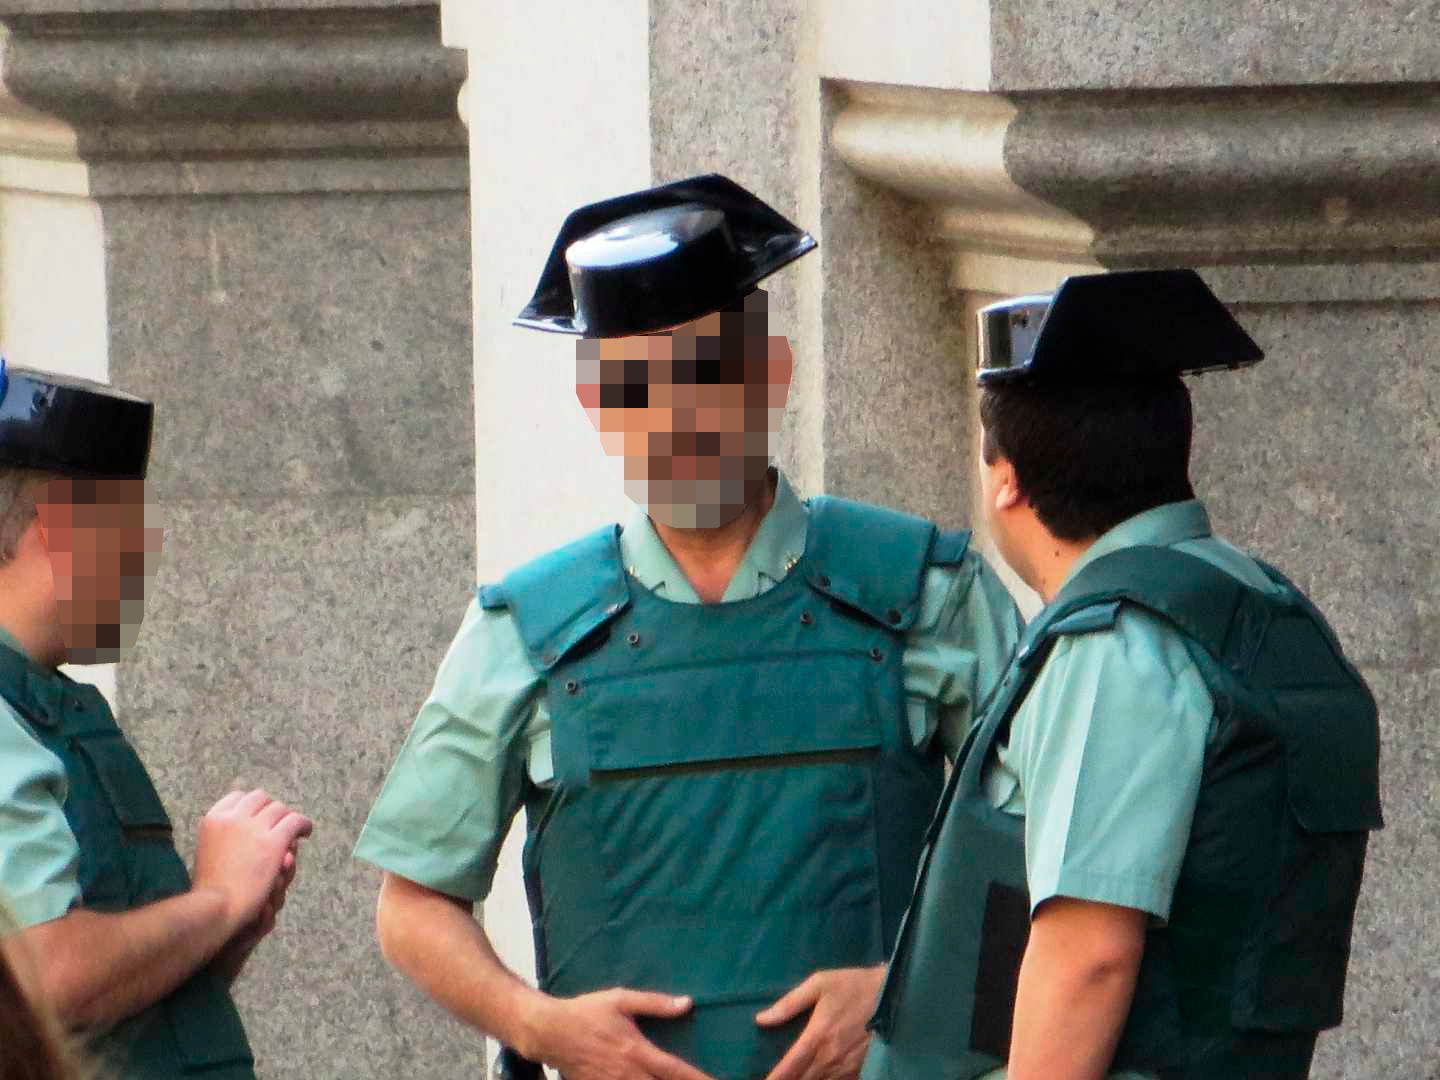 Miembros de la Guardia Civil en Madrid.